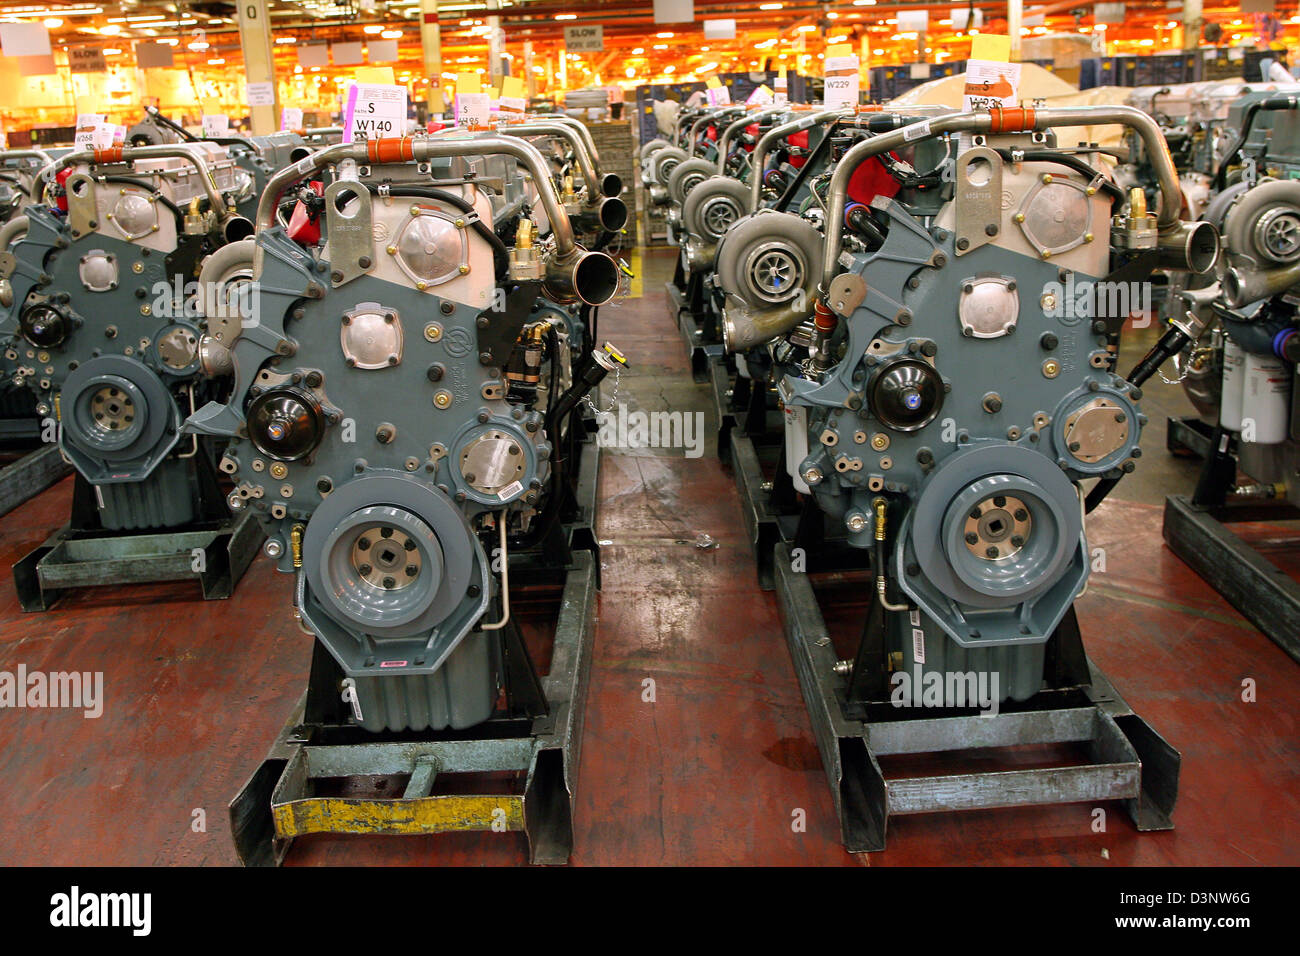 truck engines of the serie 60 stand ready in the detroit diesel stock photo alamy https www alamy com stock photo truck engines of the serie 60 stand ready in the detroit diesel factory 53955848 html